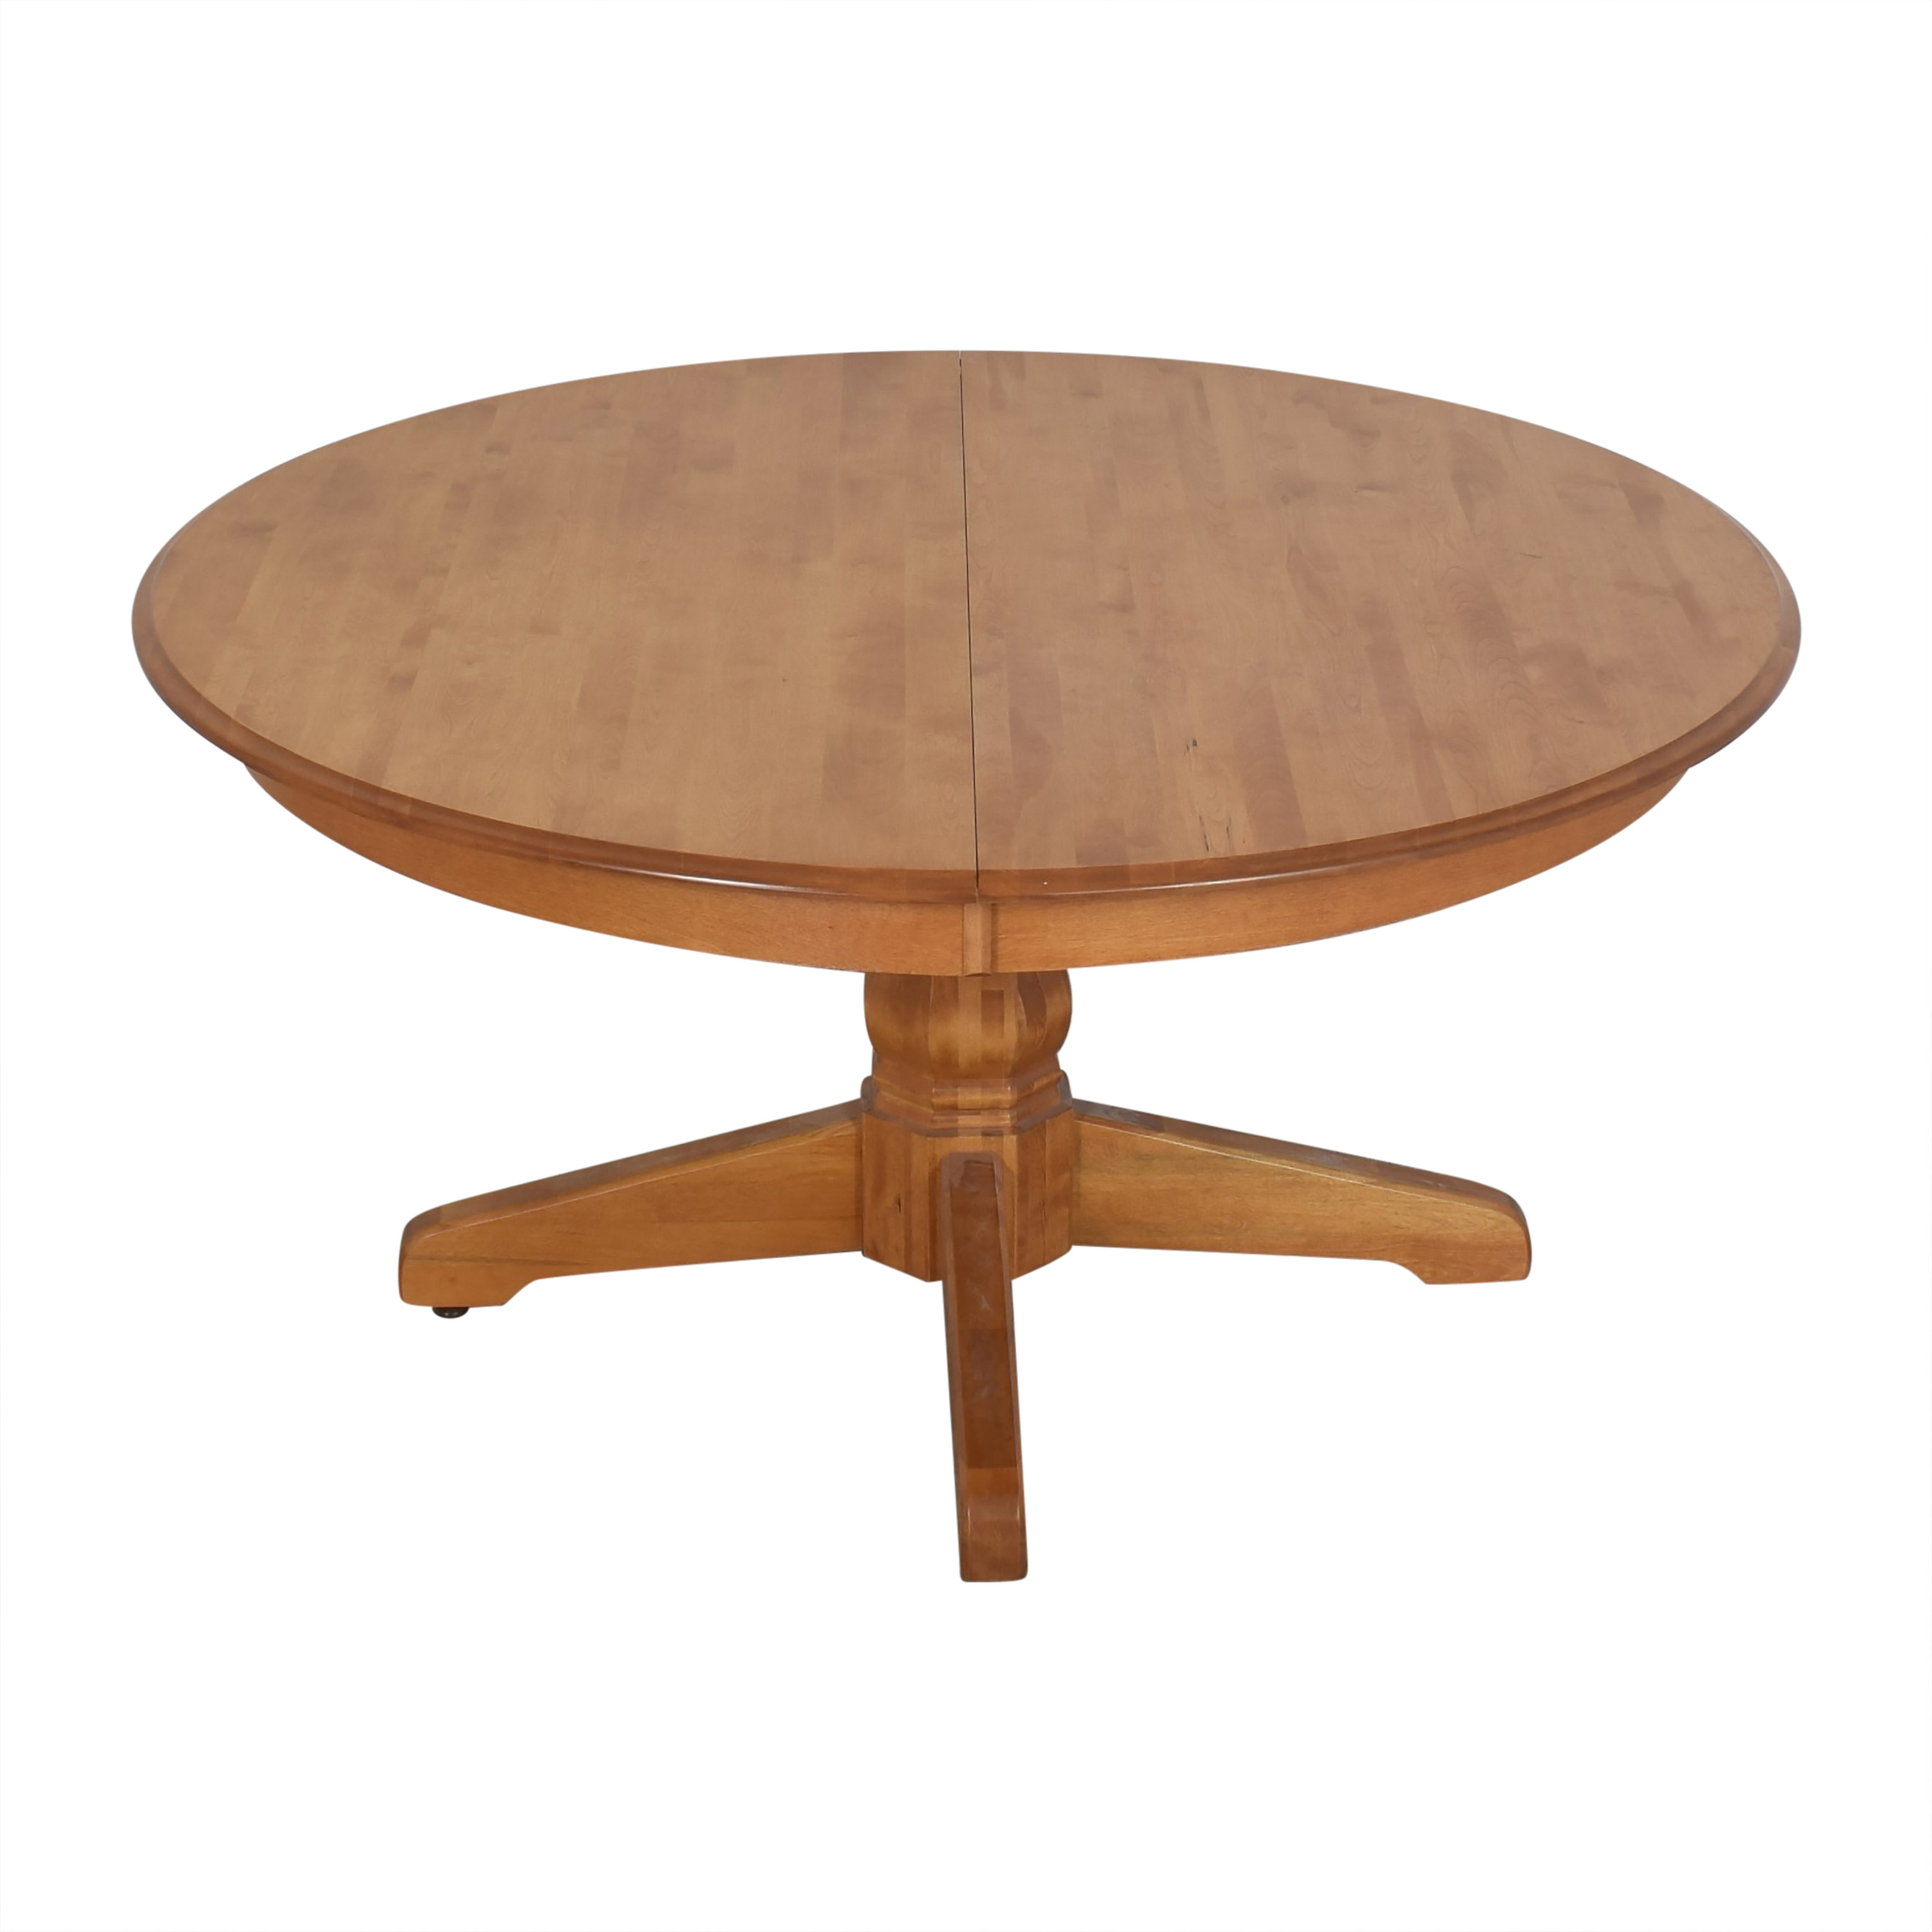 Canadel Canadel Dining Room Table nj